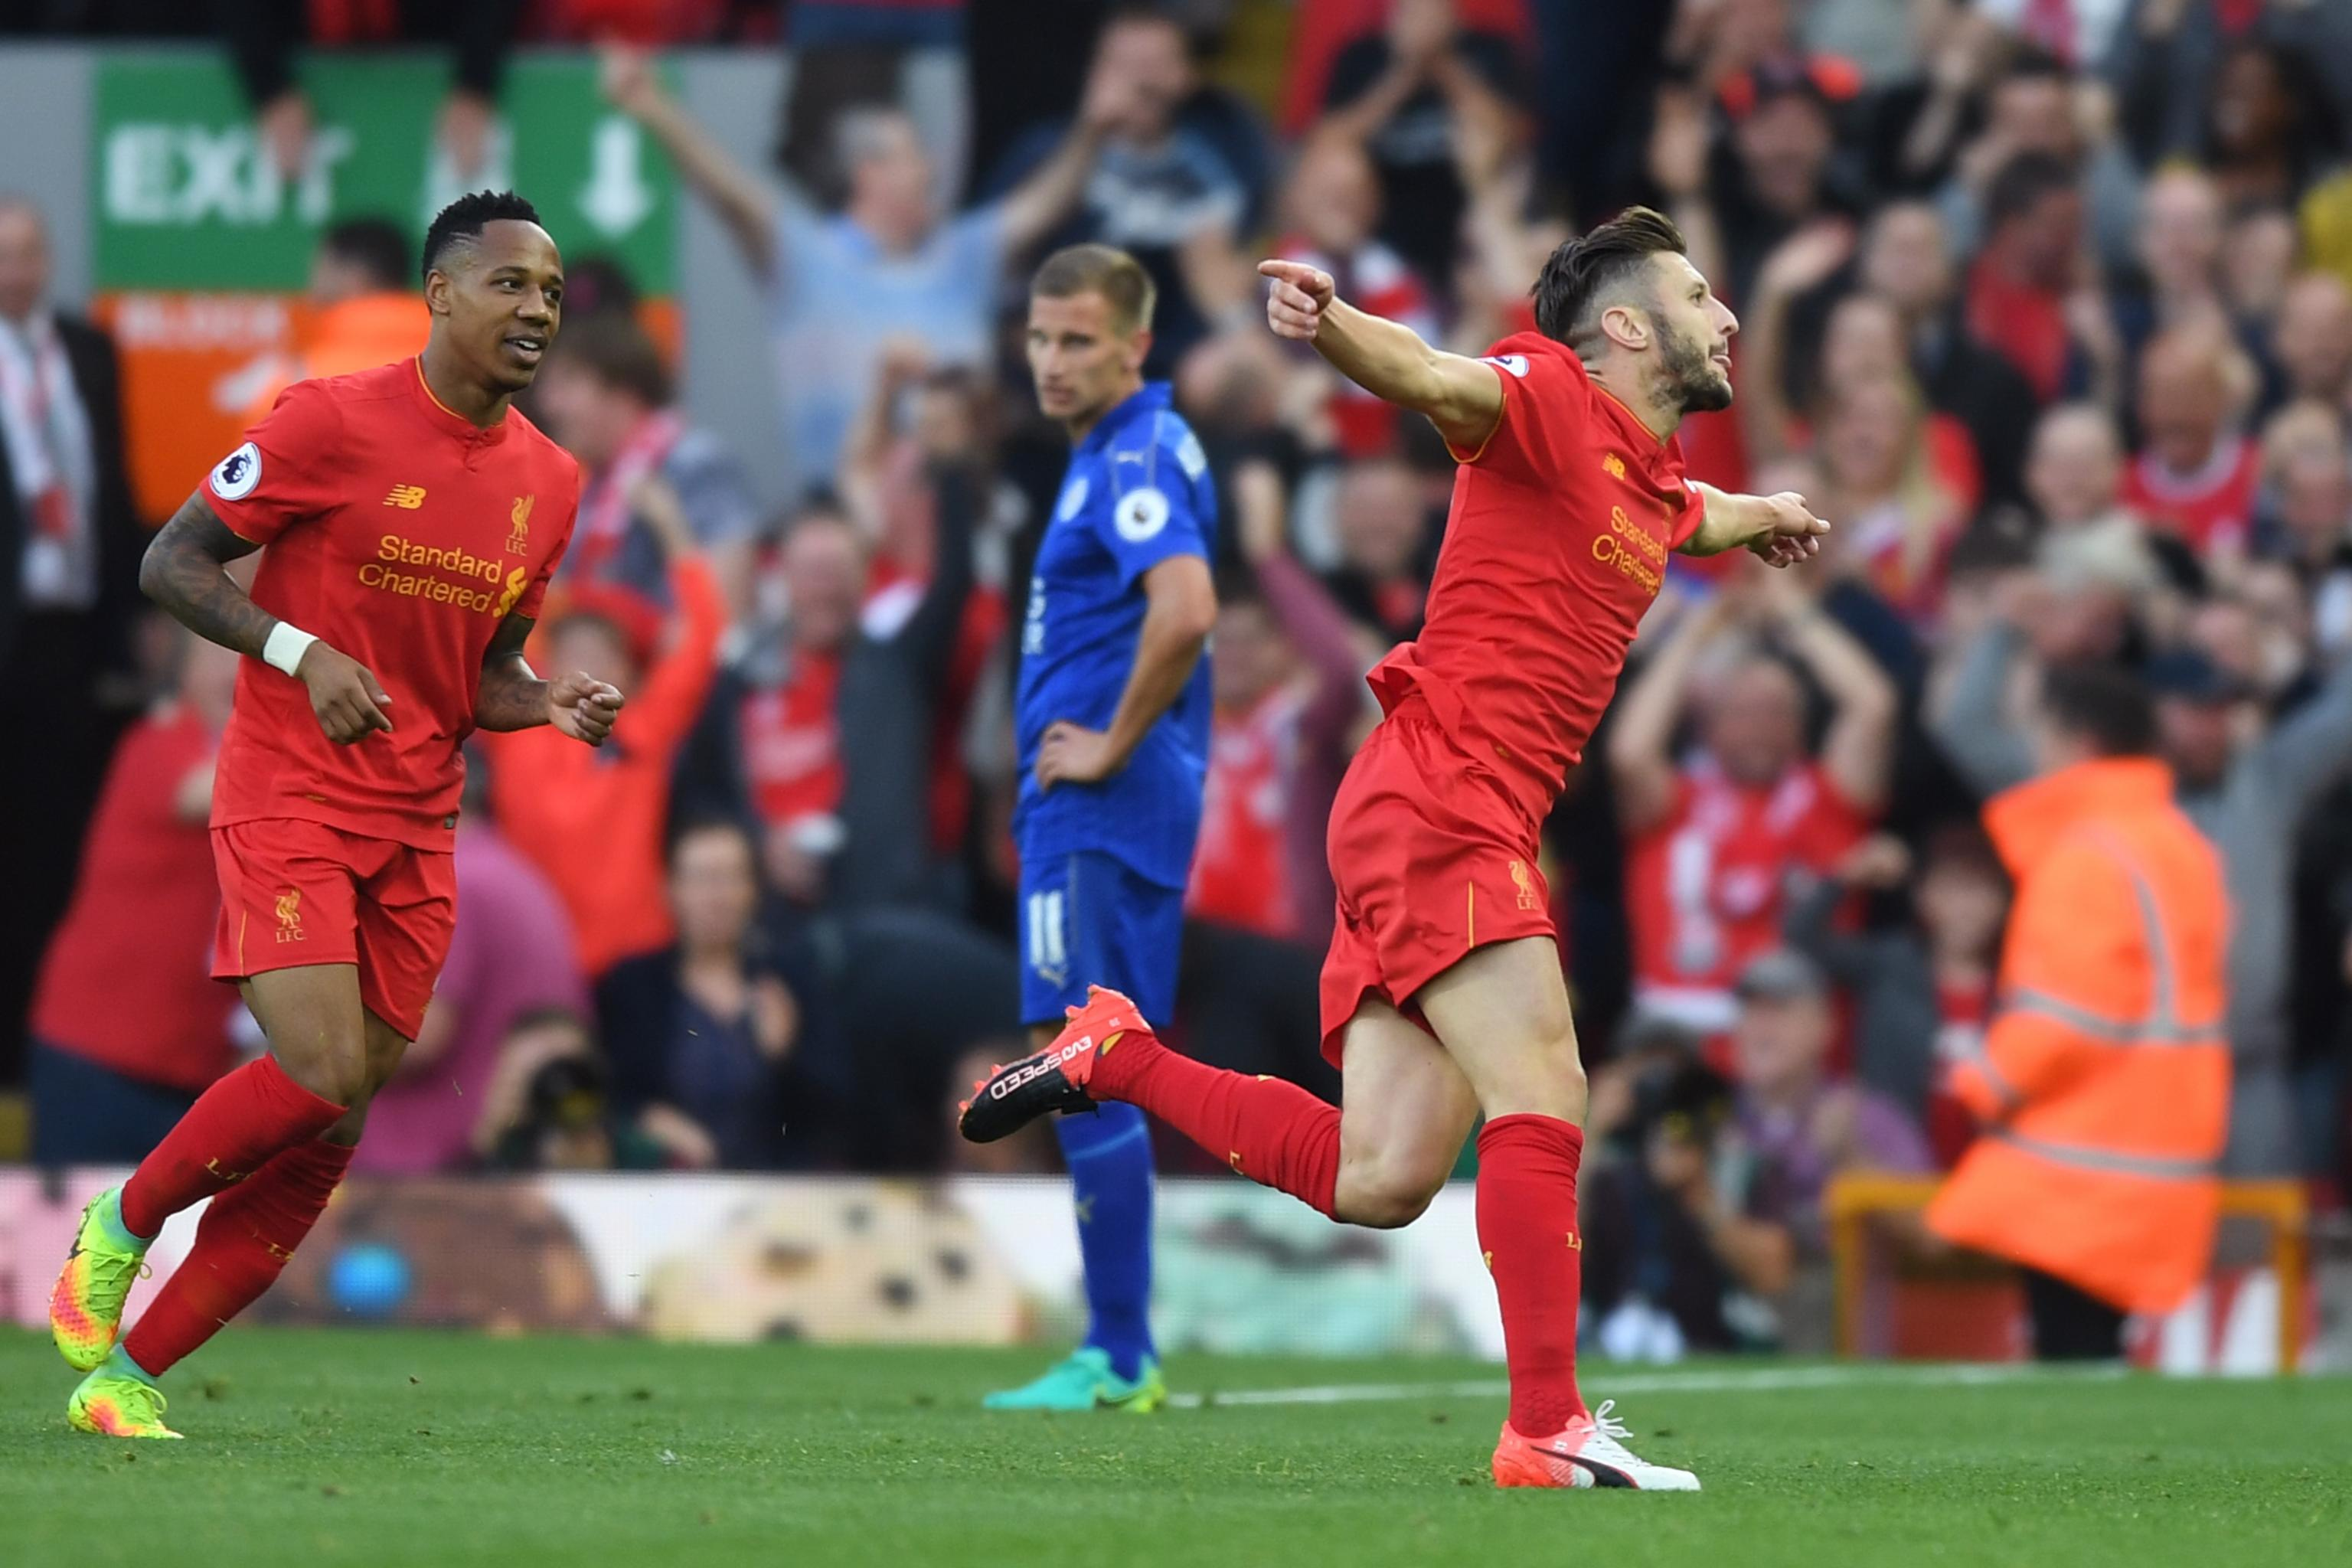 liverpool vs leicester city score and reaction from 2016 premier league match bleacher report latest news videos and highlights liverpool vs leicester city score and